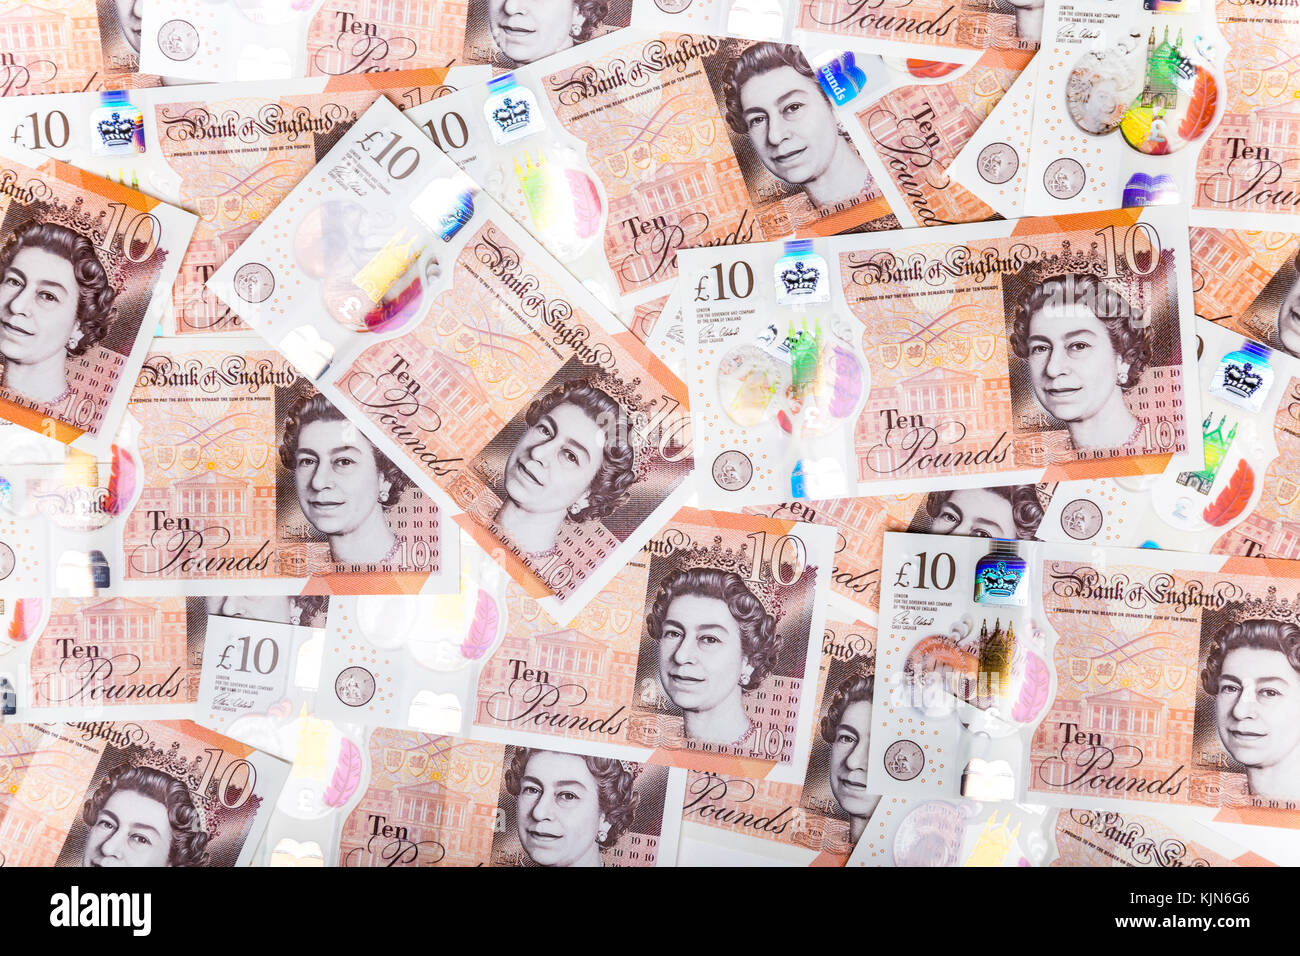 New polymer £10 pound notes - Stock Image